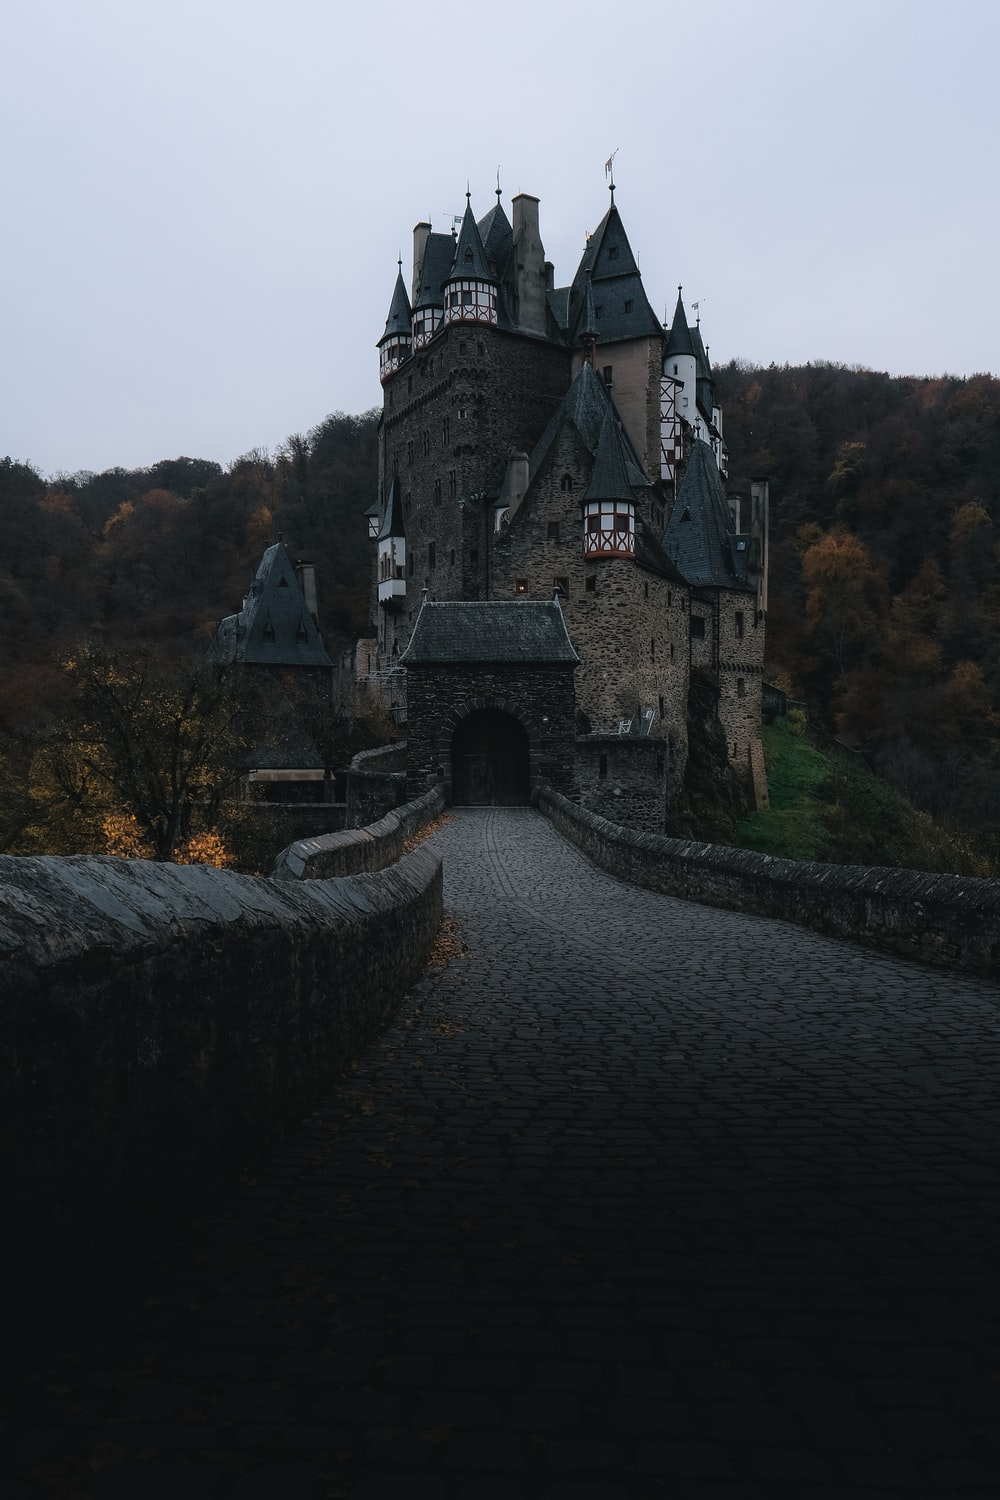 gray castle near mountain during daytime